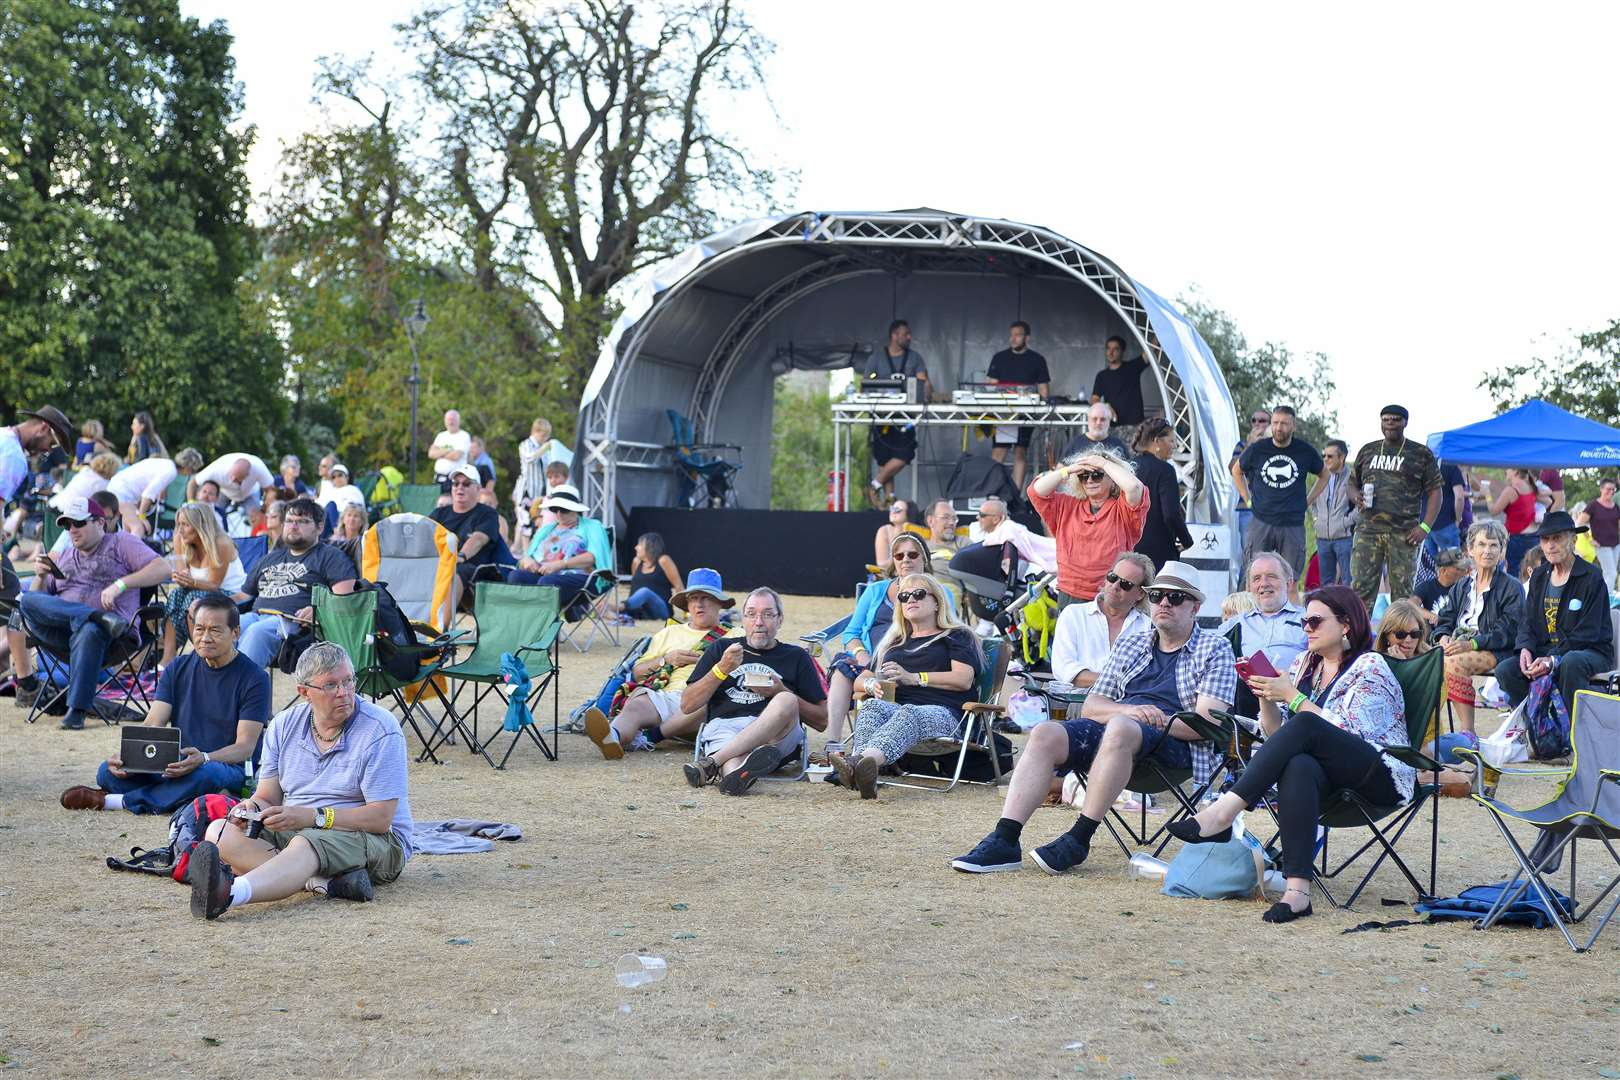 Gig in the Park in Diss Park. Picture by Mark Bullimore.